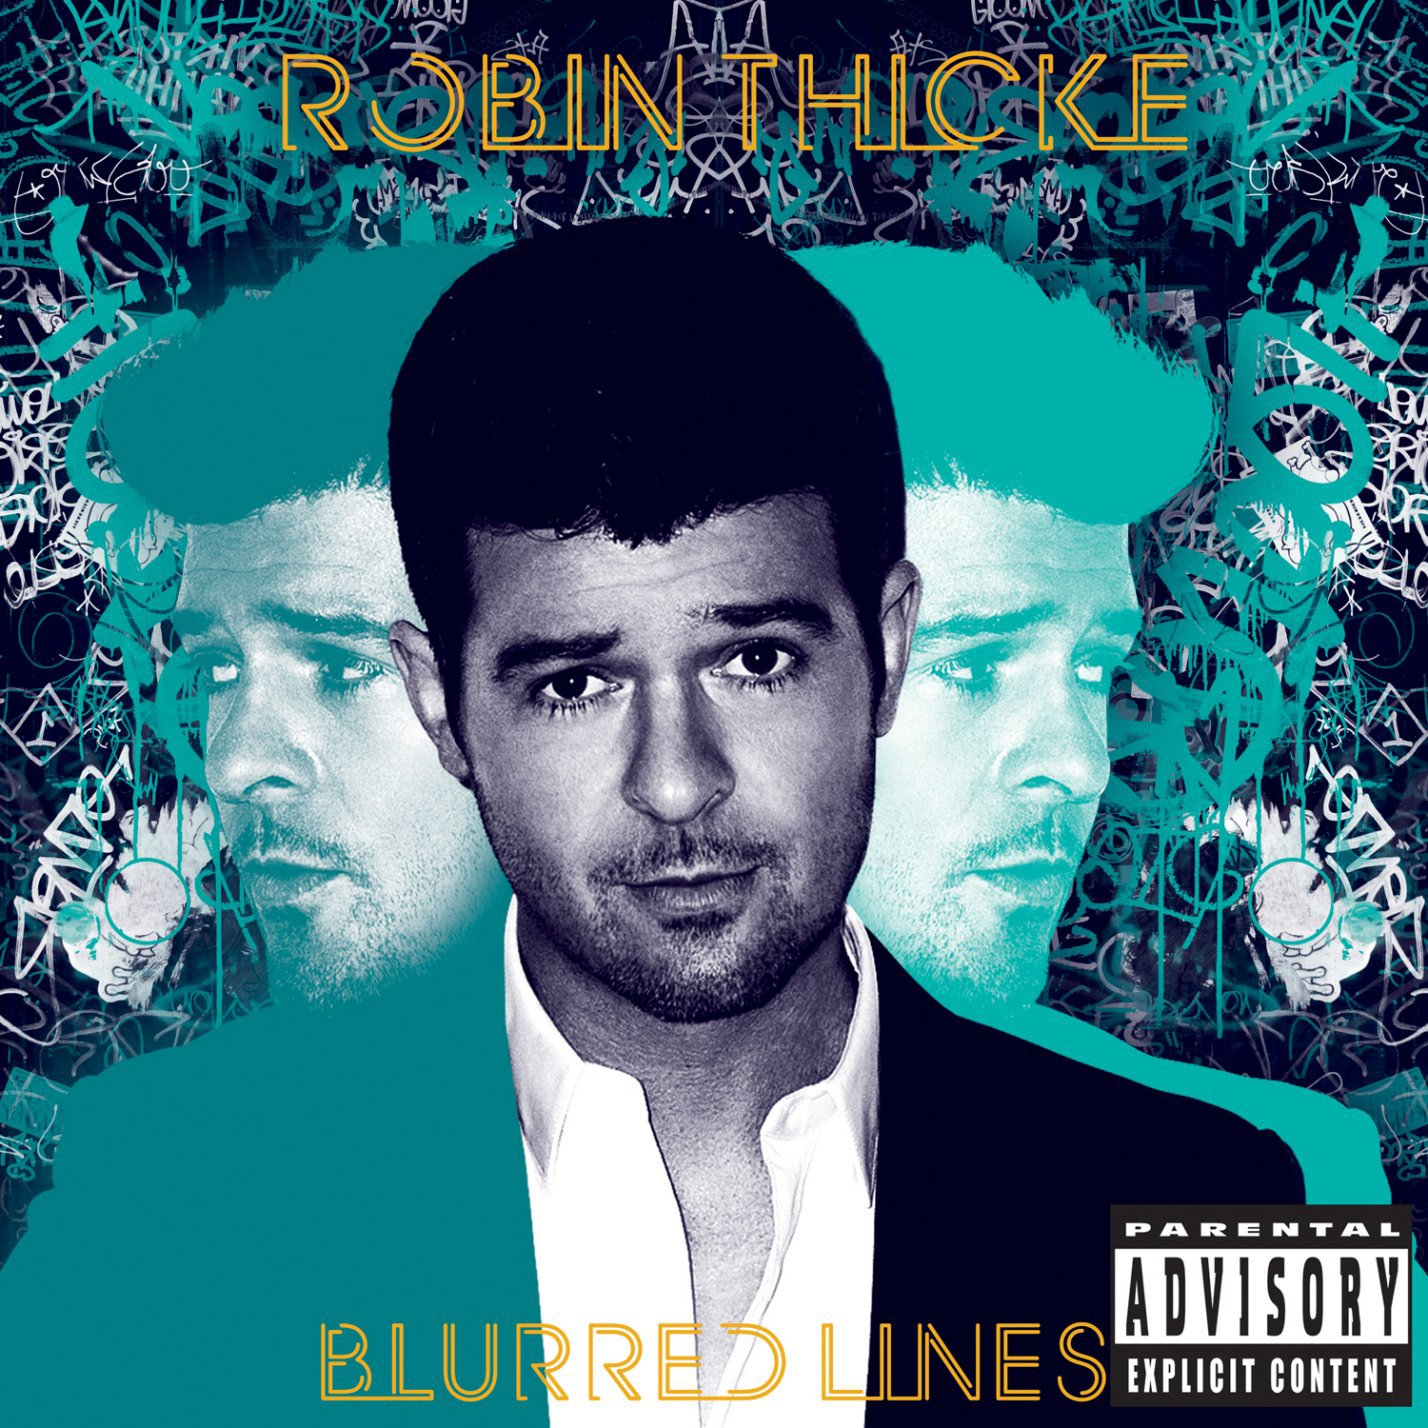 Robin Thicke - Blurred Lines album review